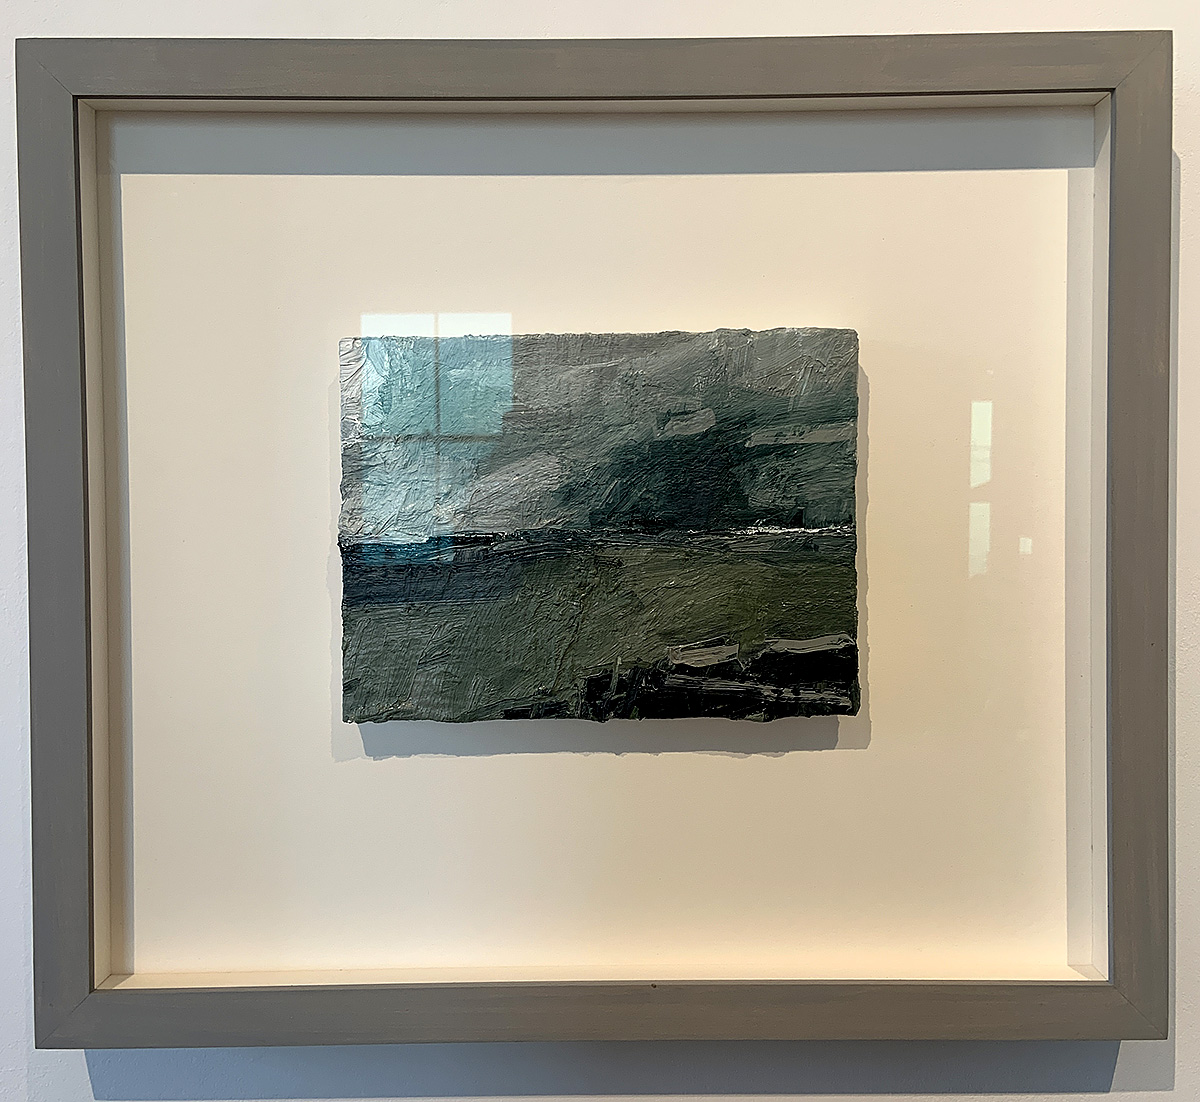 Dominique Cameron, 'Fife Ness - Sea', oil on wood